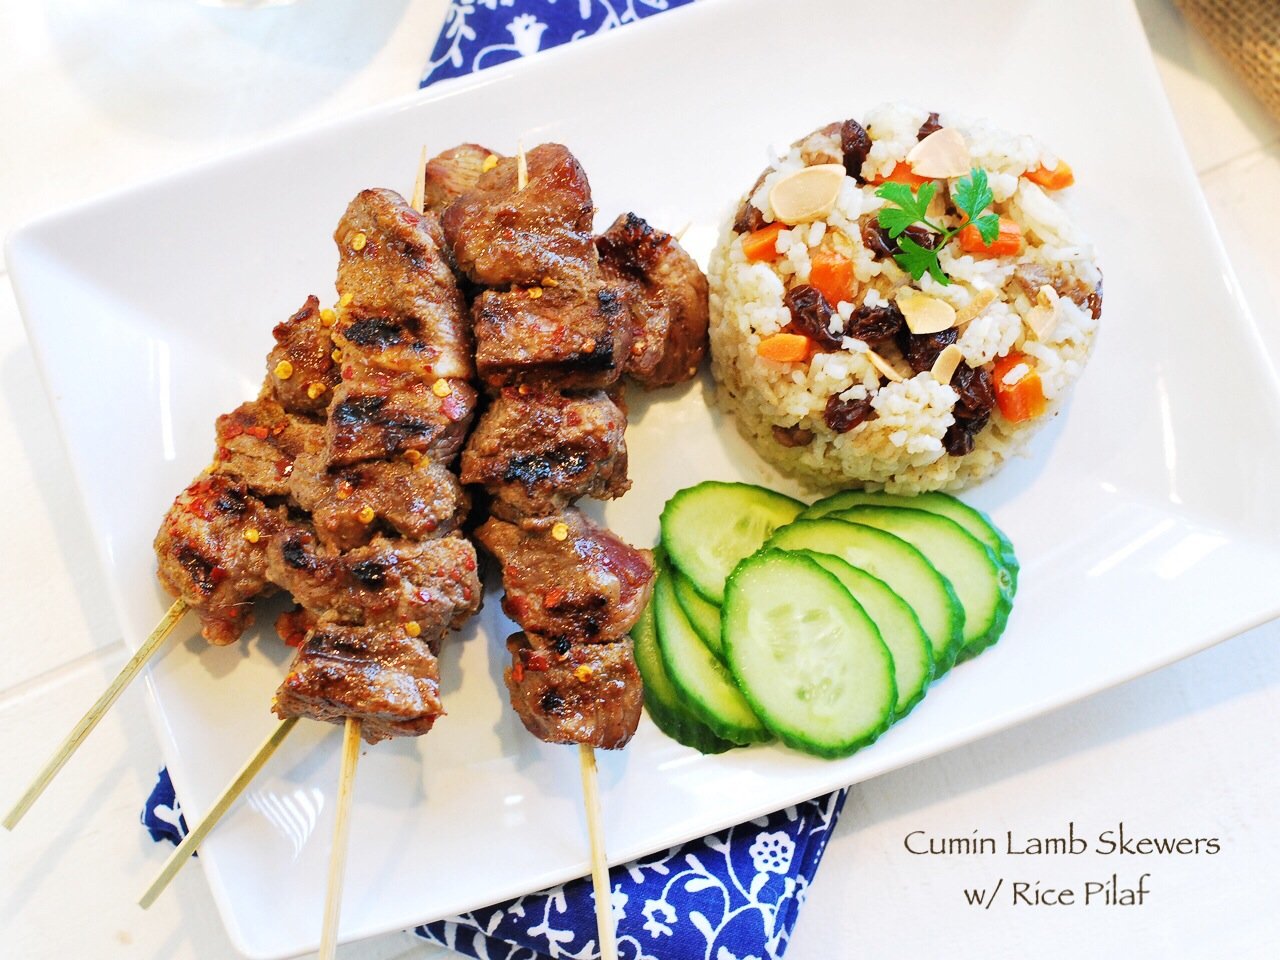 Cumin lamb skewers